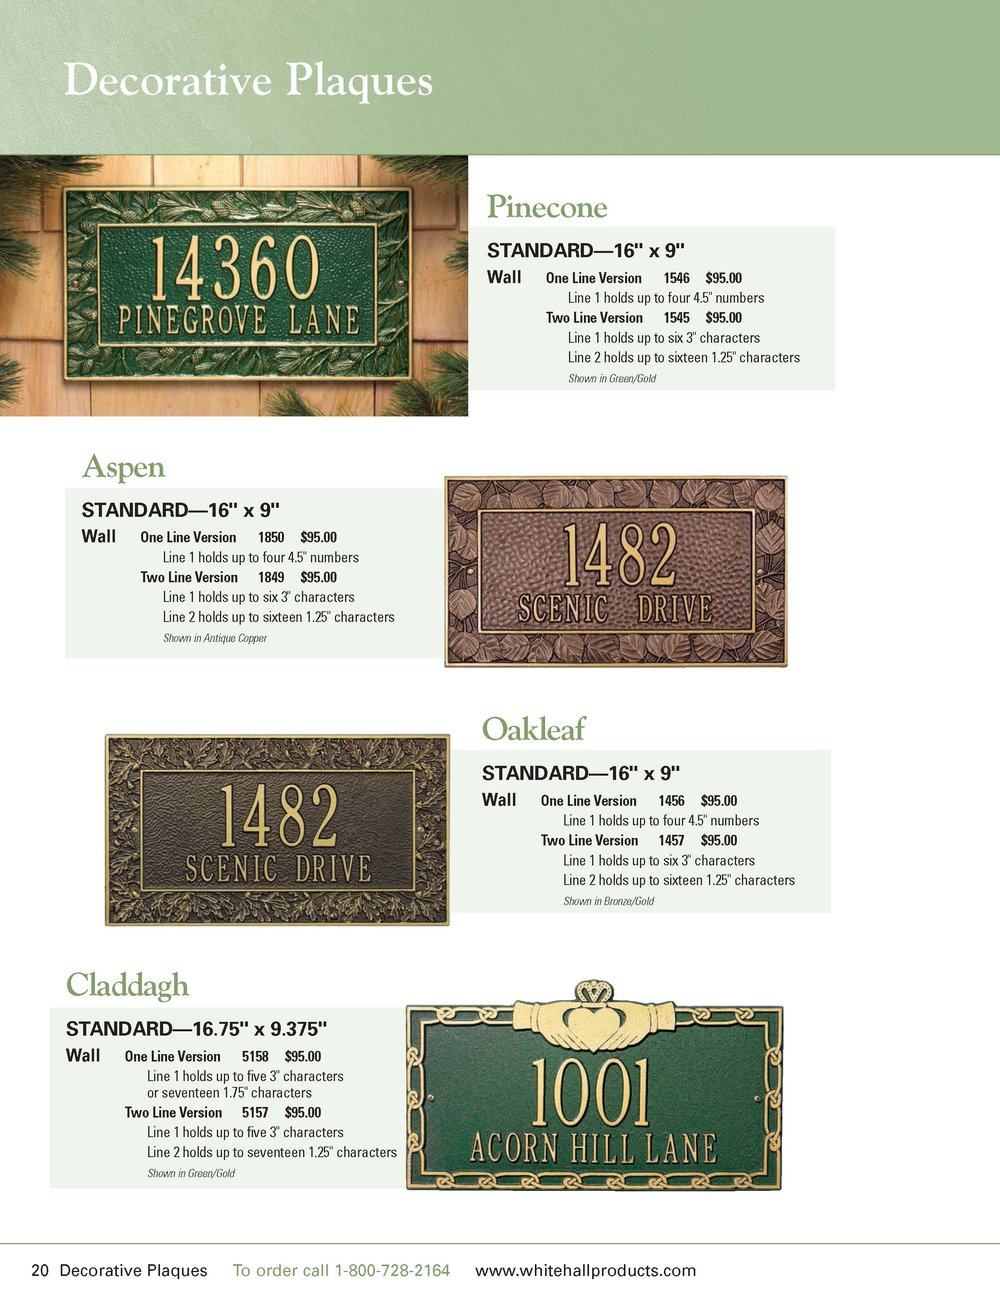 whitehall_catalog_pers_Page_20.jpg